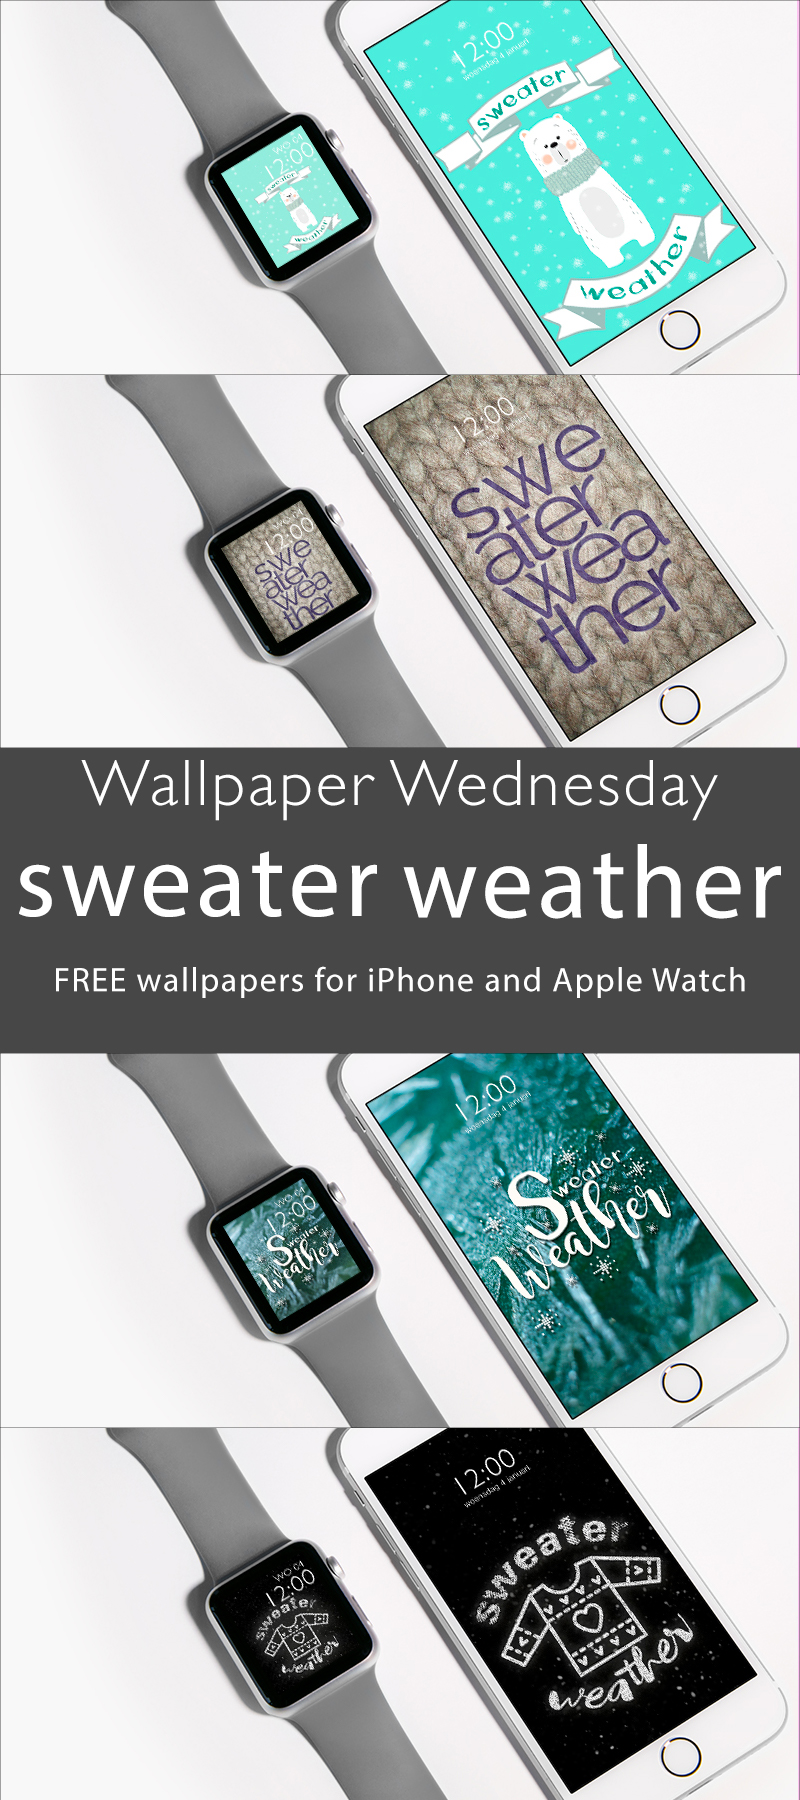 Wallpaper Wednesday: sweater weather free iPhone smartphone Apple Watch watch face wallpaper - ©debbieschrijft.nl